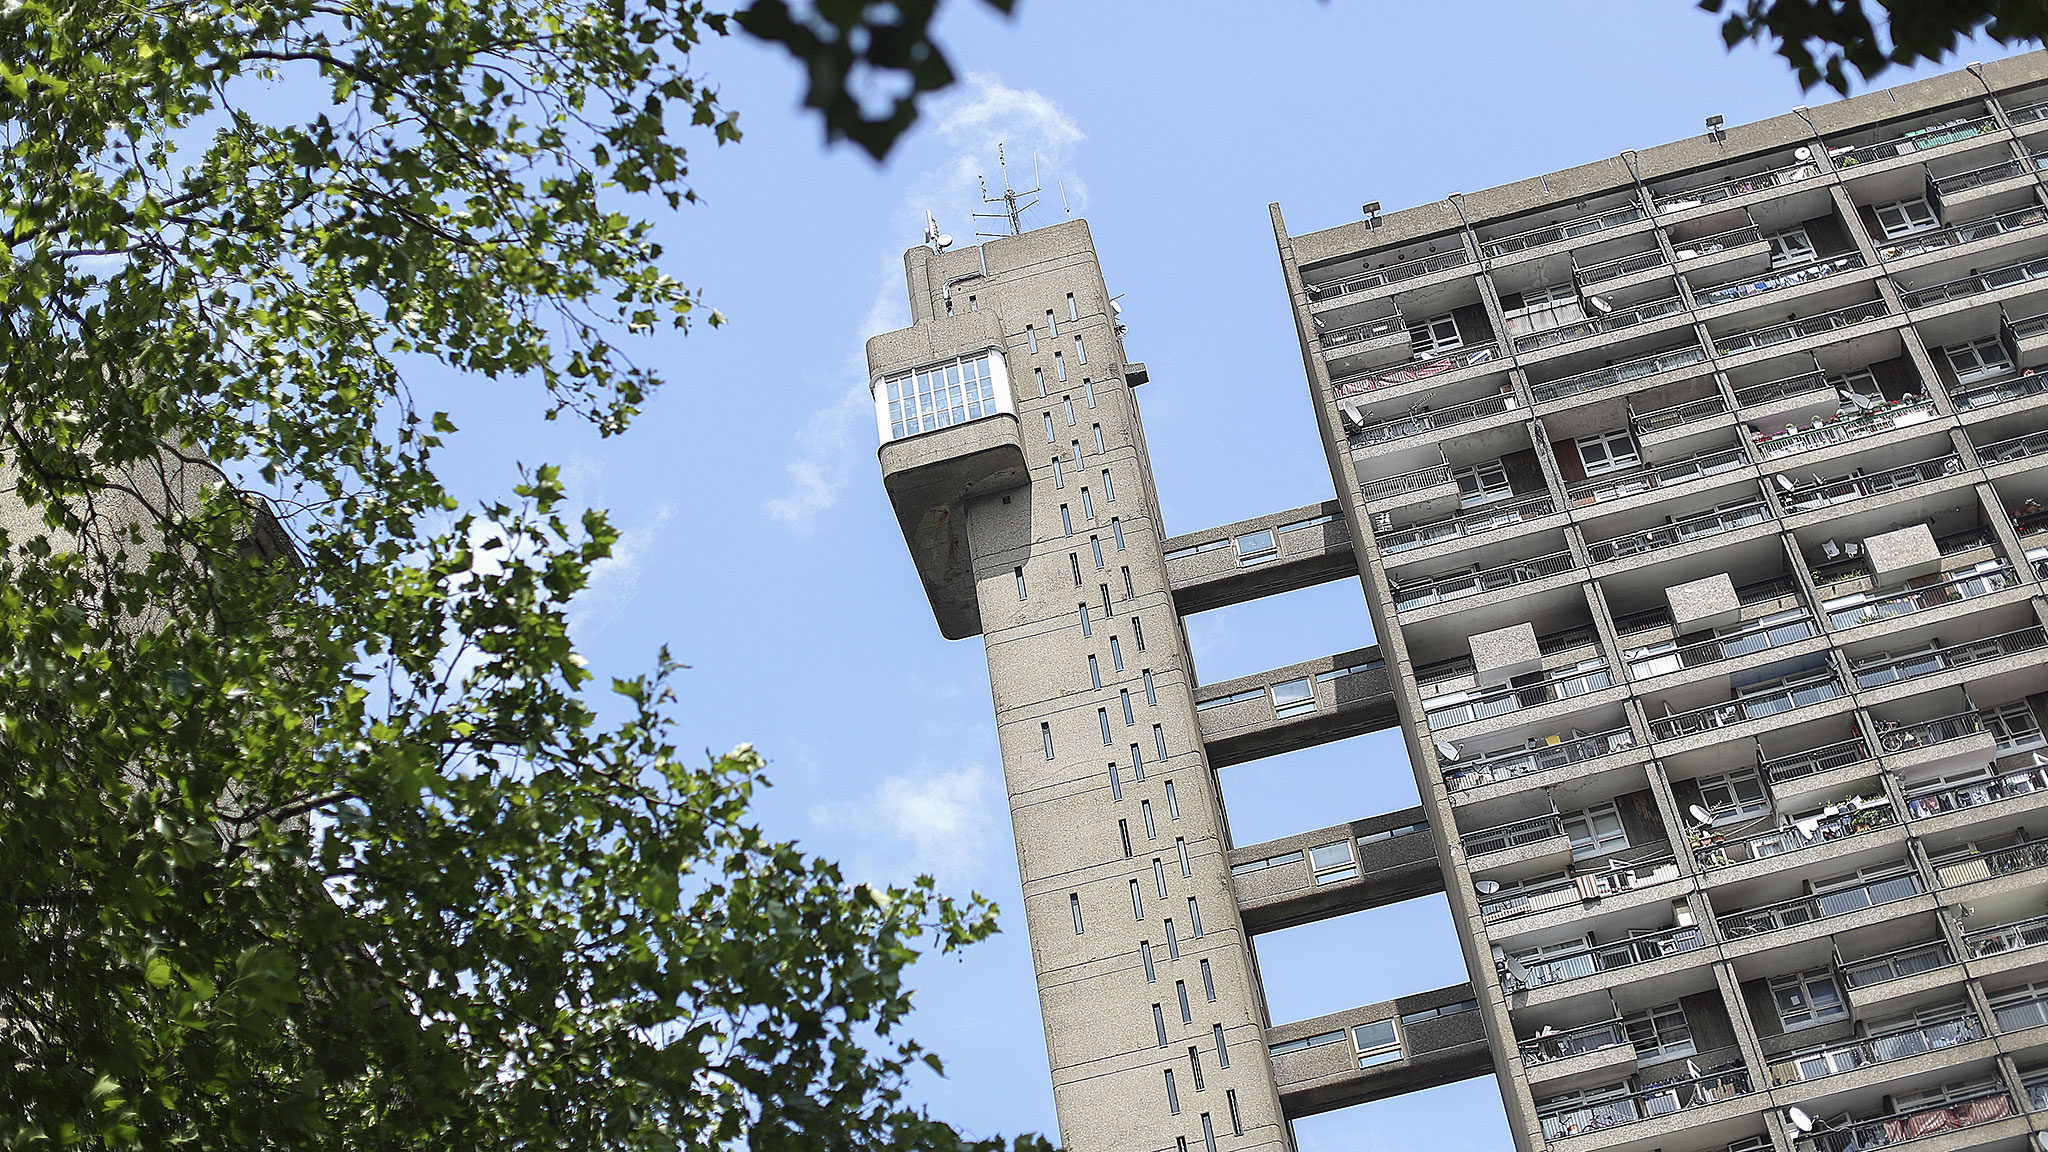 Concrete Examples Has London S Once Bold Architecture Lost Its